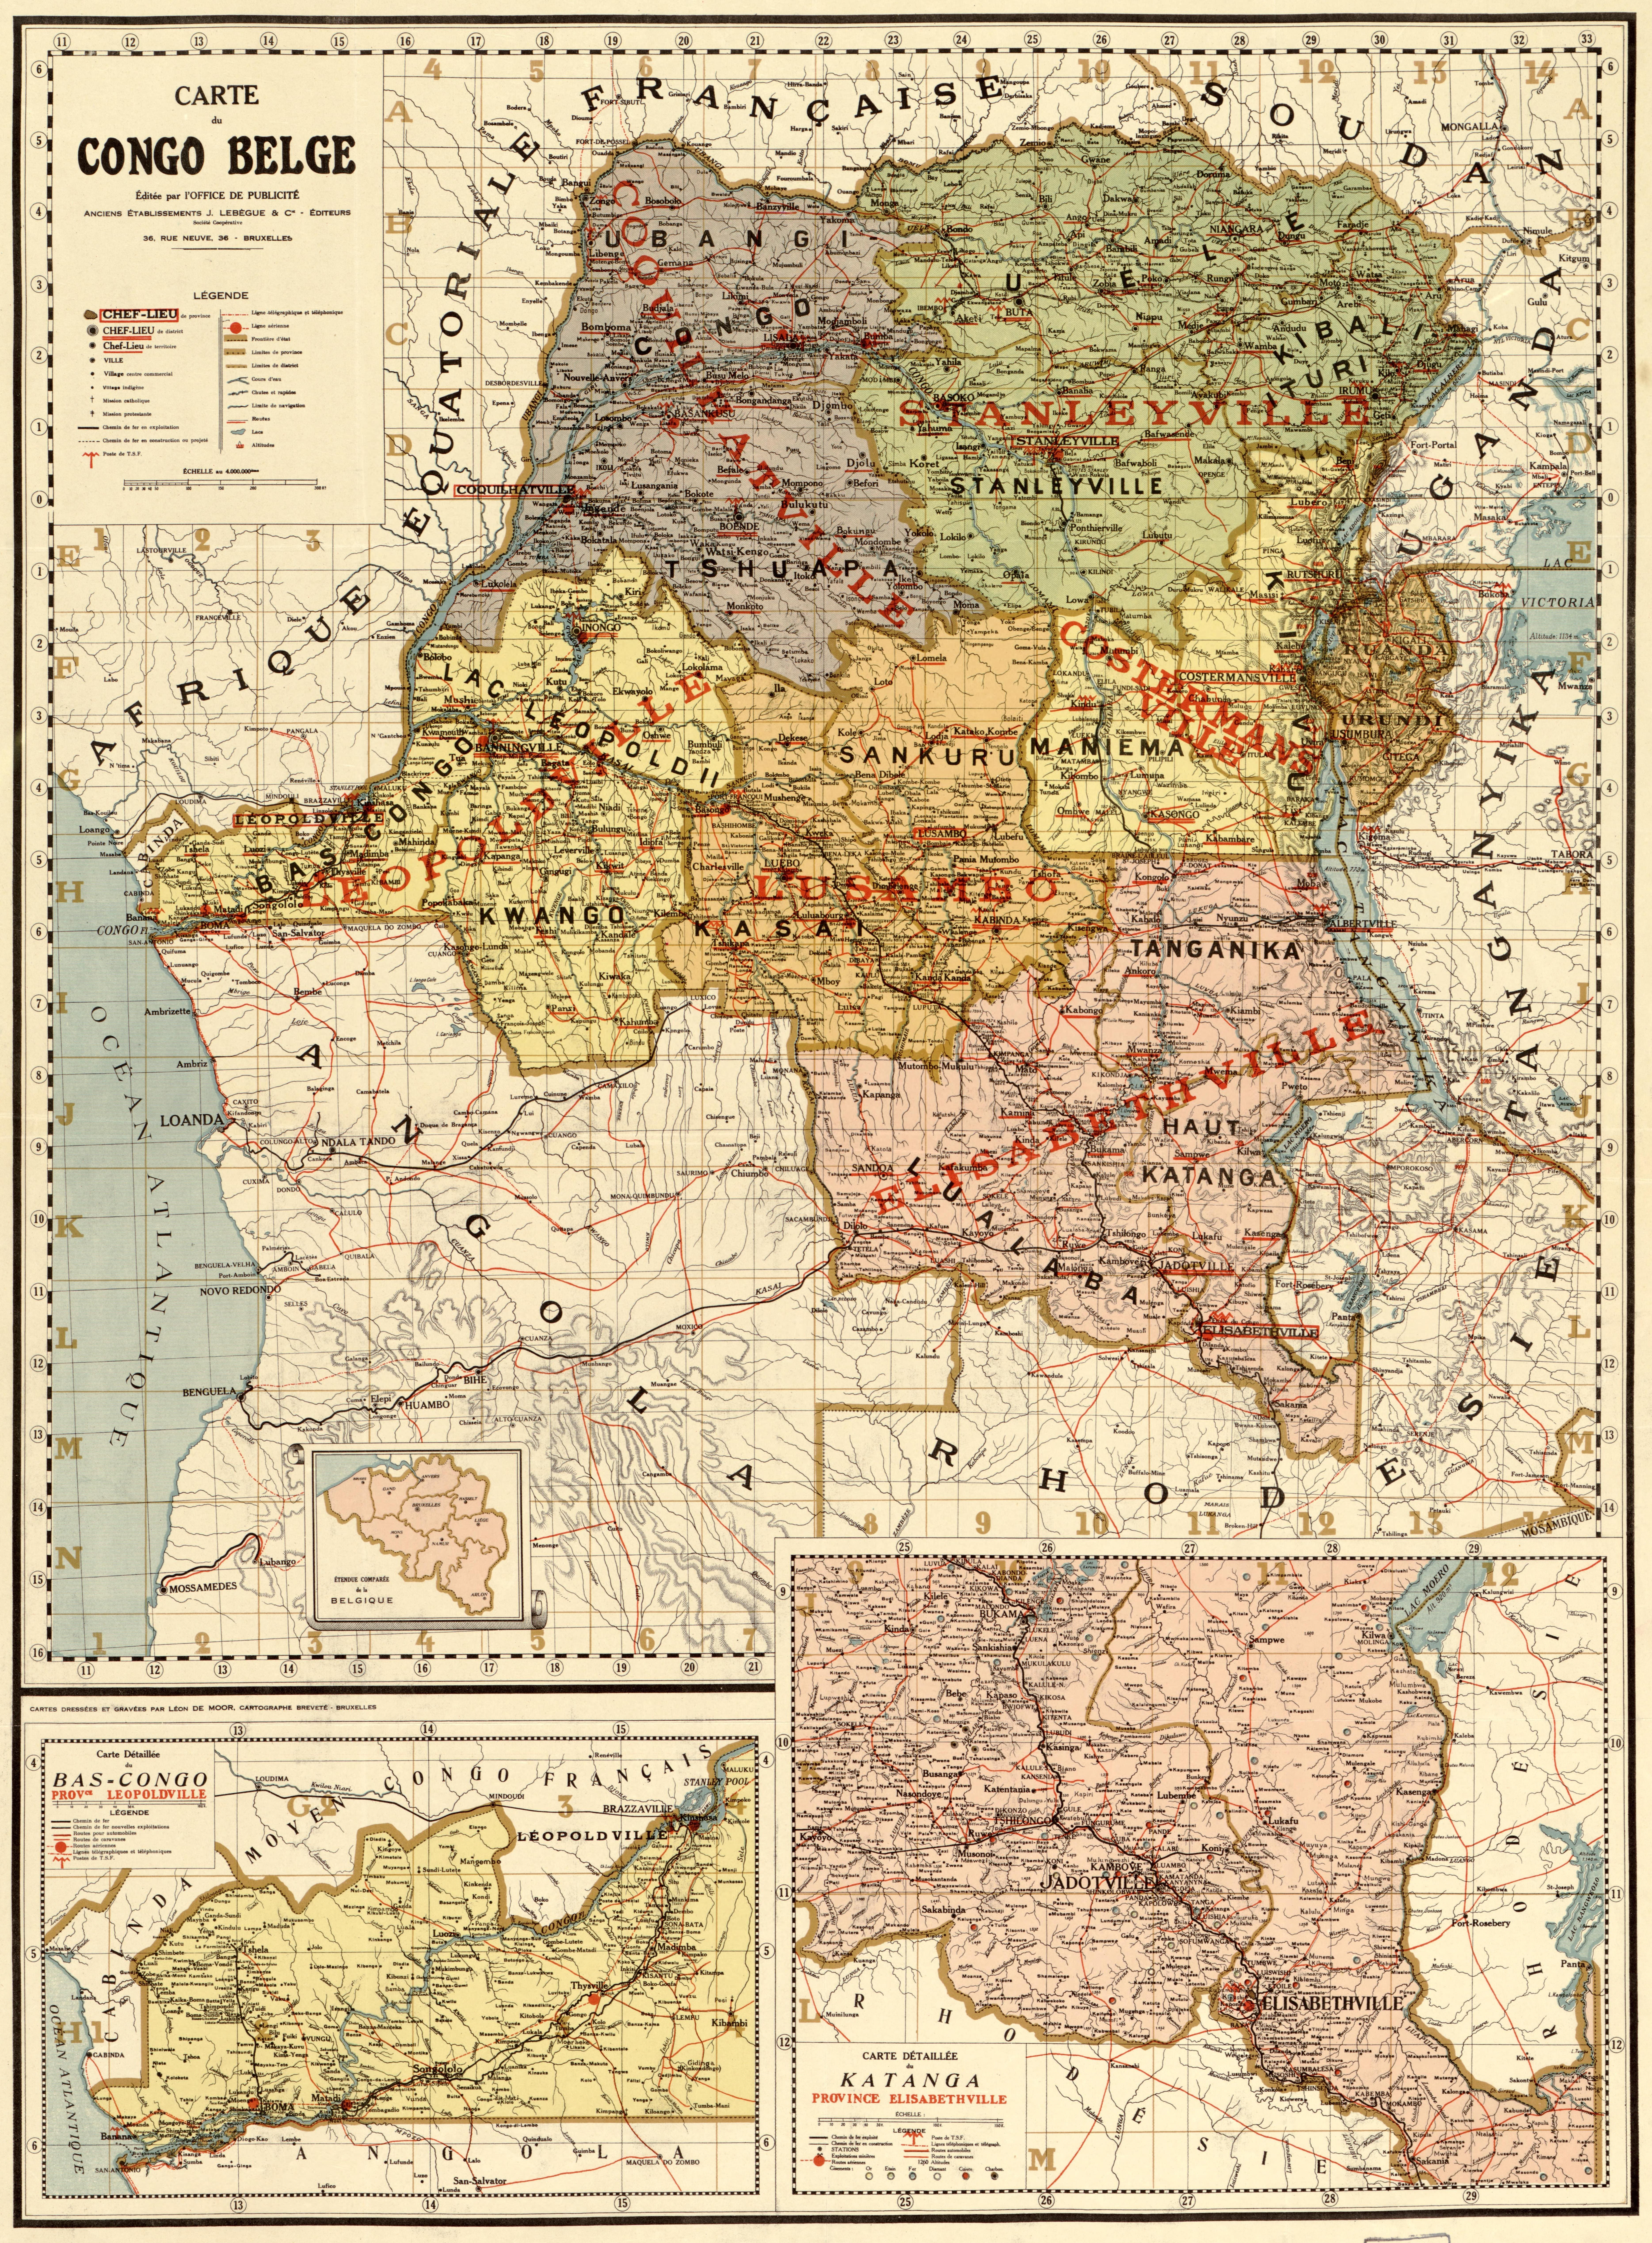 imperialism in the congo Western imperialism in places such as the congo and india helped spur industrialization by - 3159721.